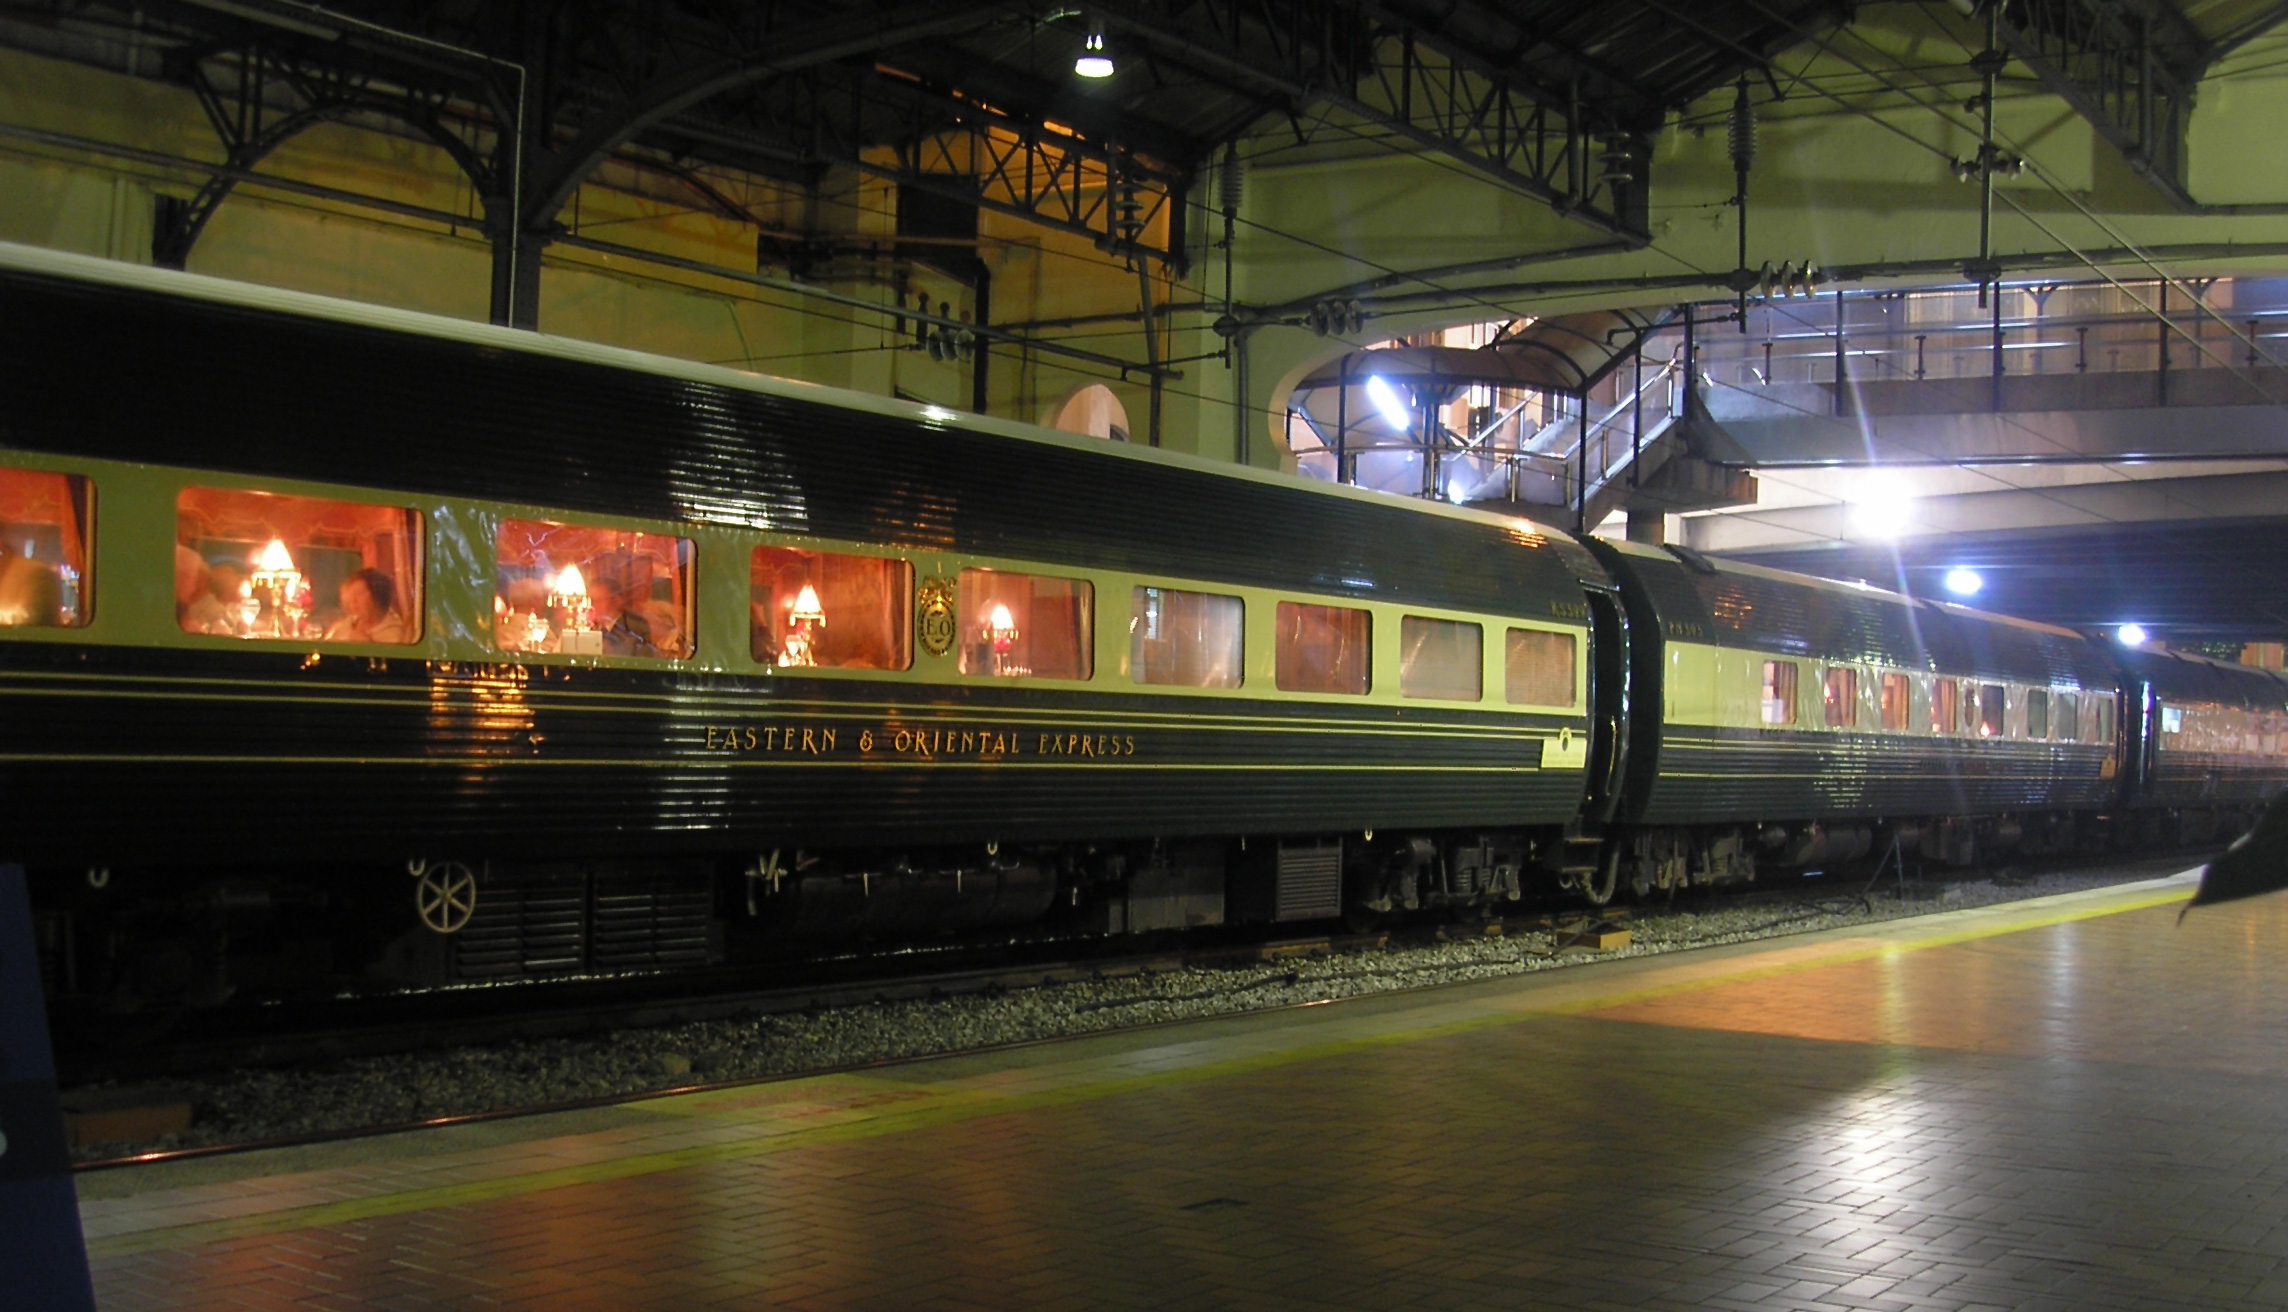 Eastern And Oriental Express Wikipedia